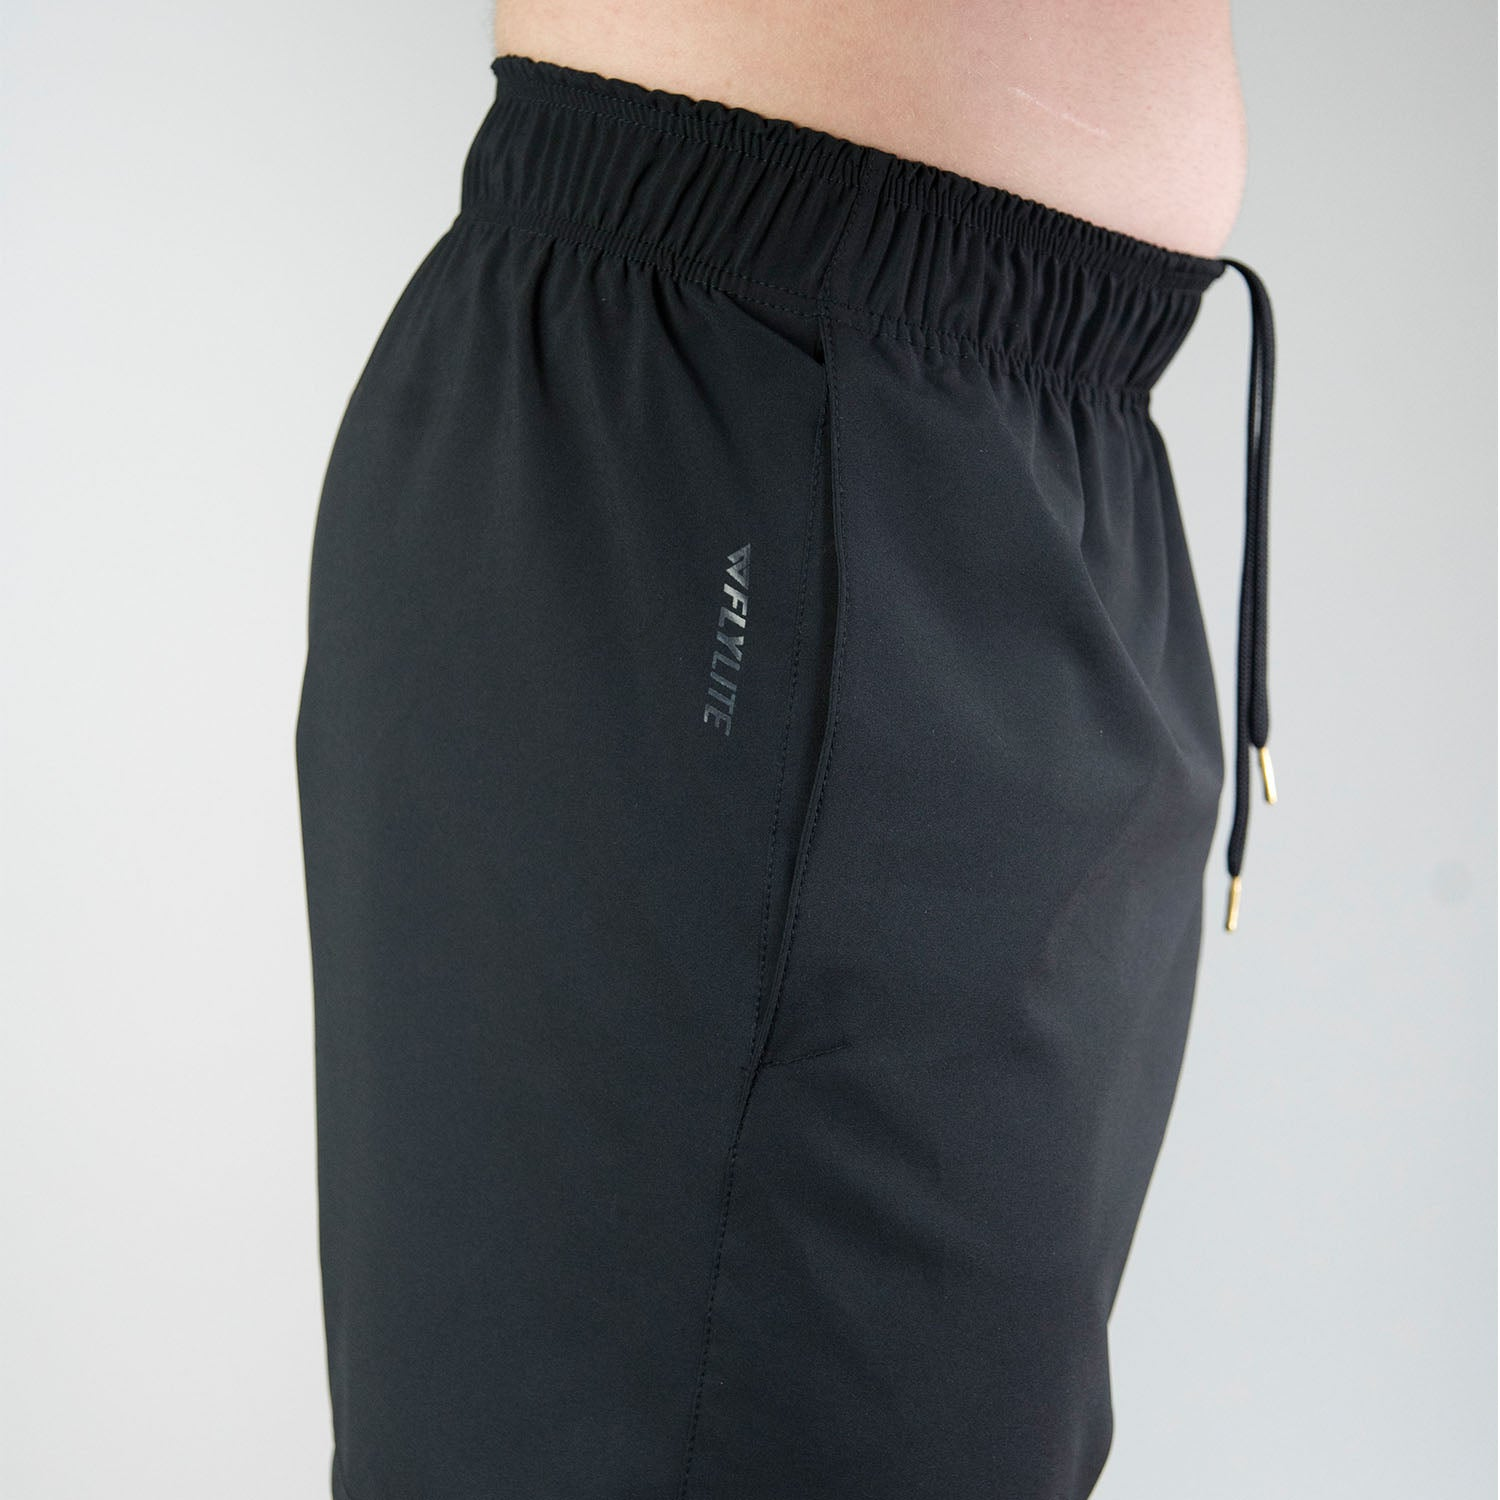 Flylite Shorts - Black On Black